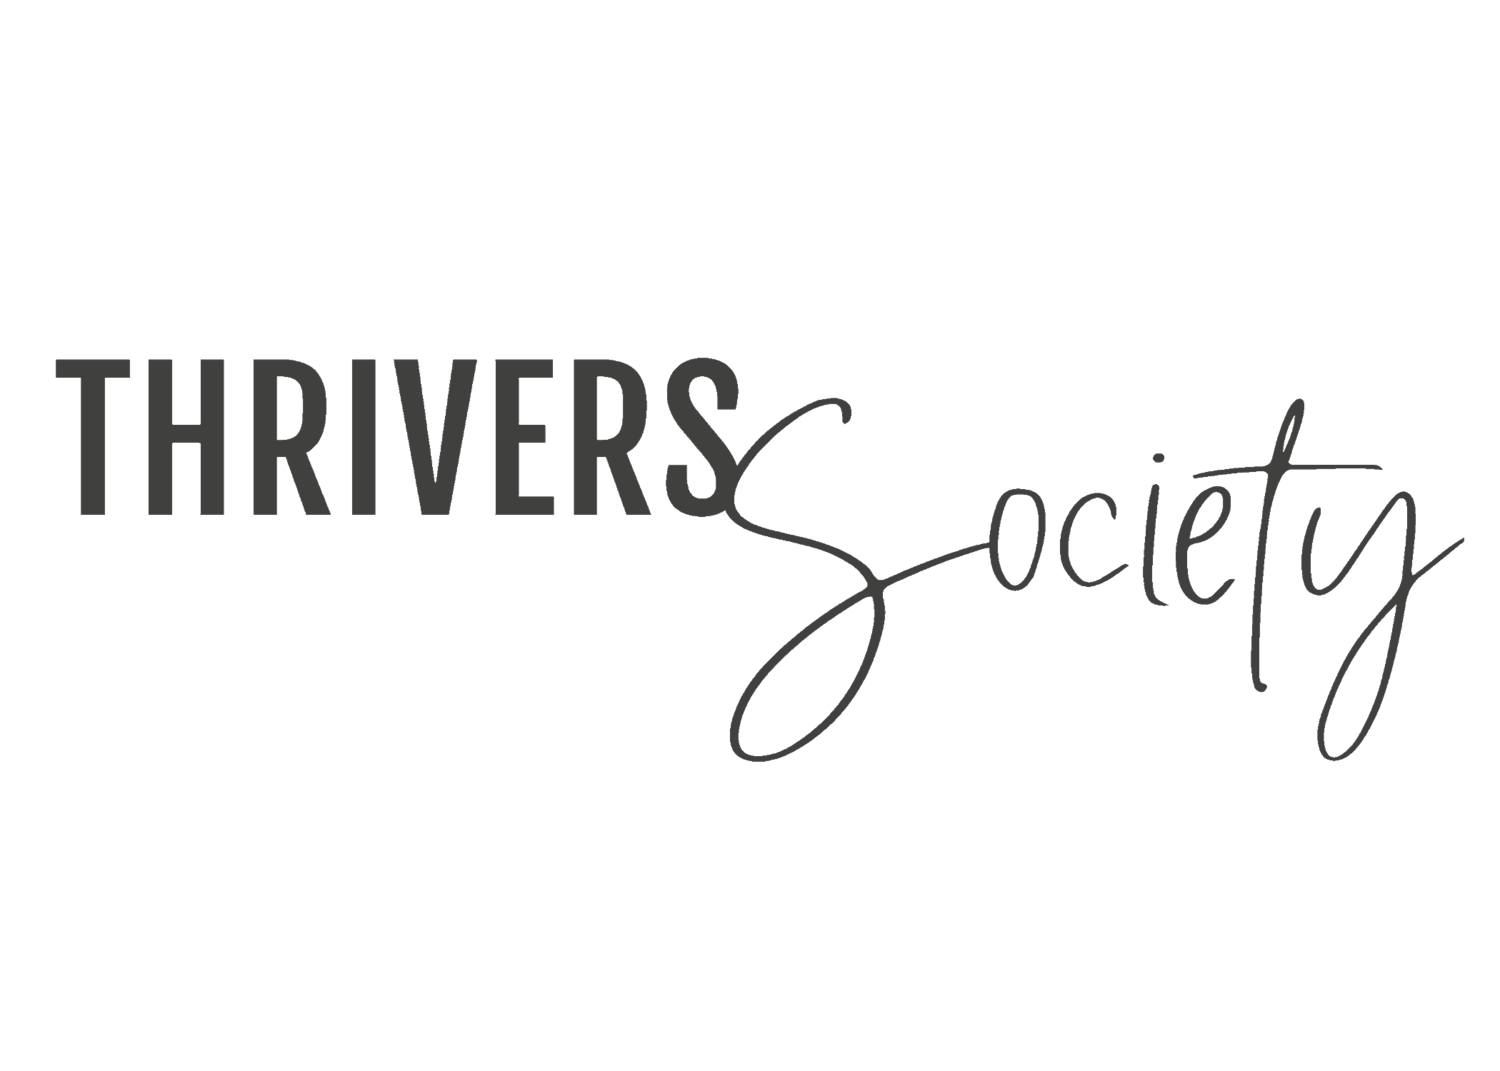 Thrivers Society